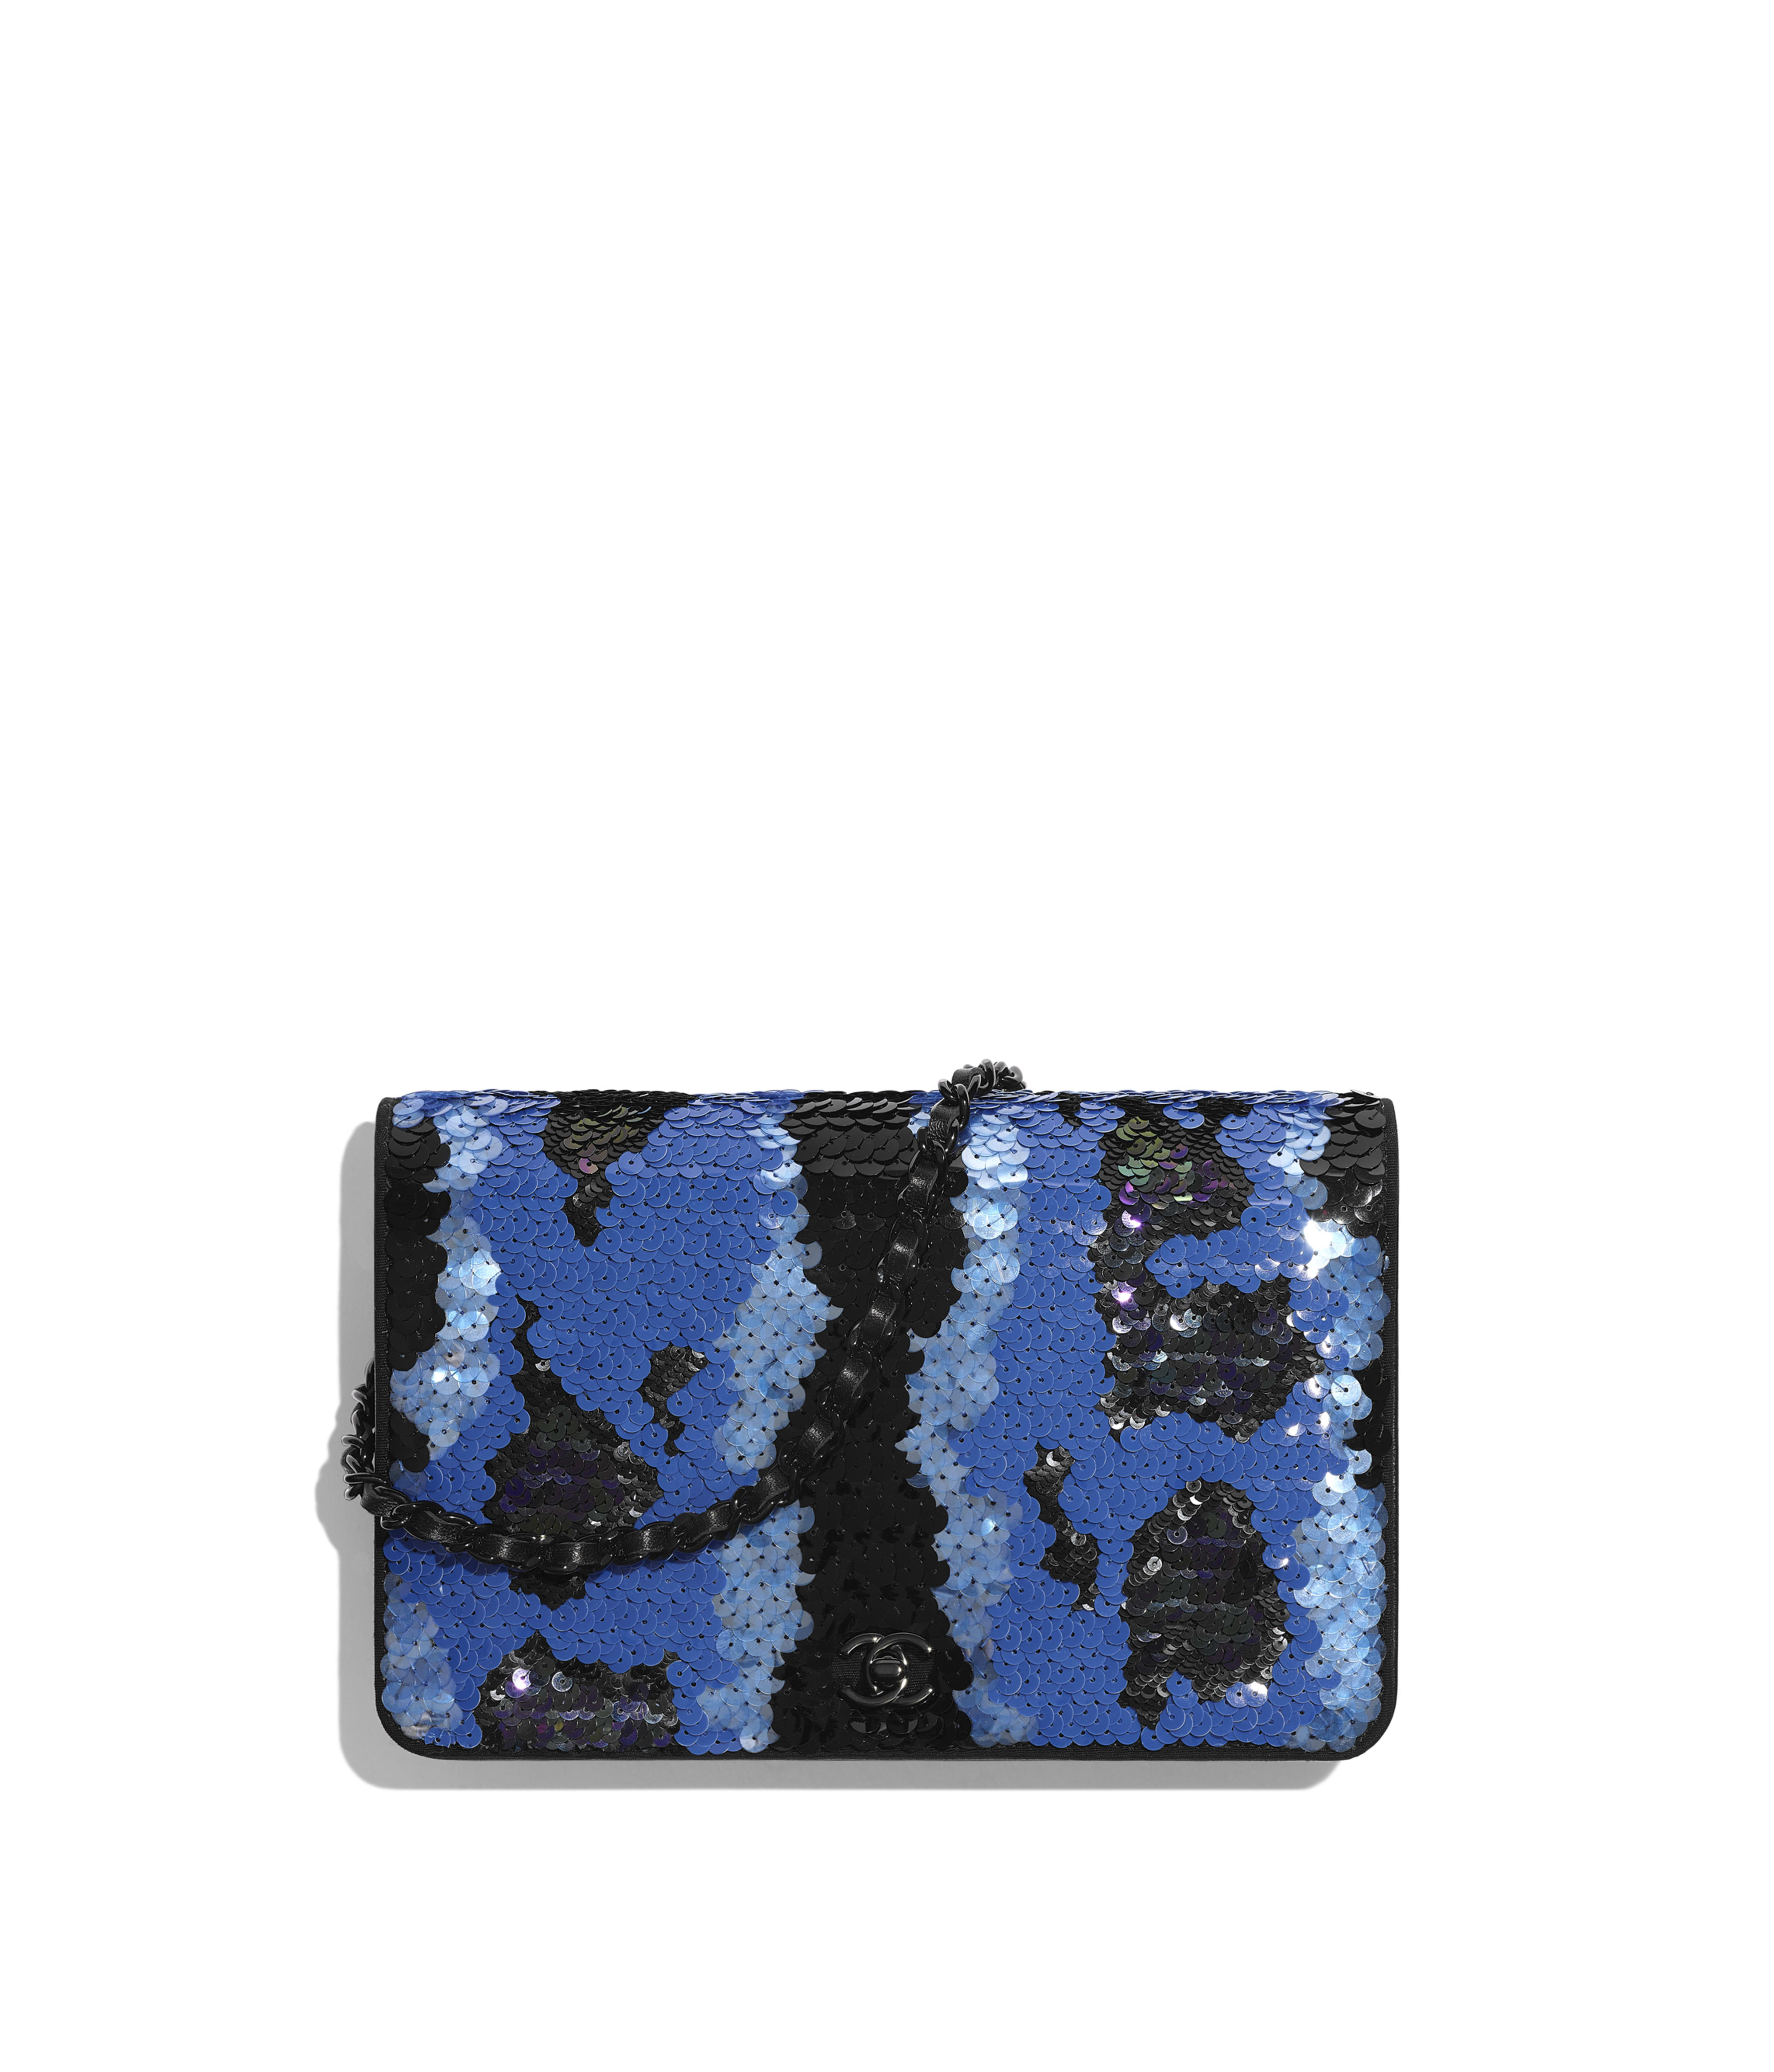 cd81af79536b Wallet on Chain Sequins & Black Metal, Blue & Black Ref. A84423B00644N0651